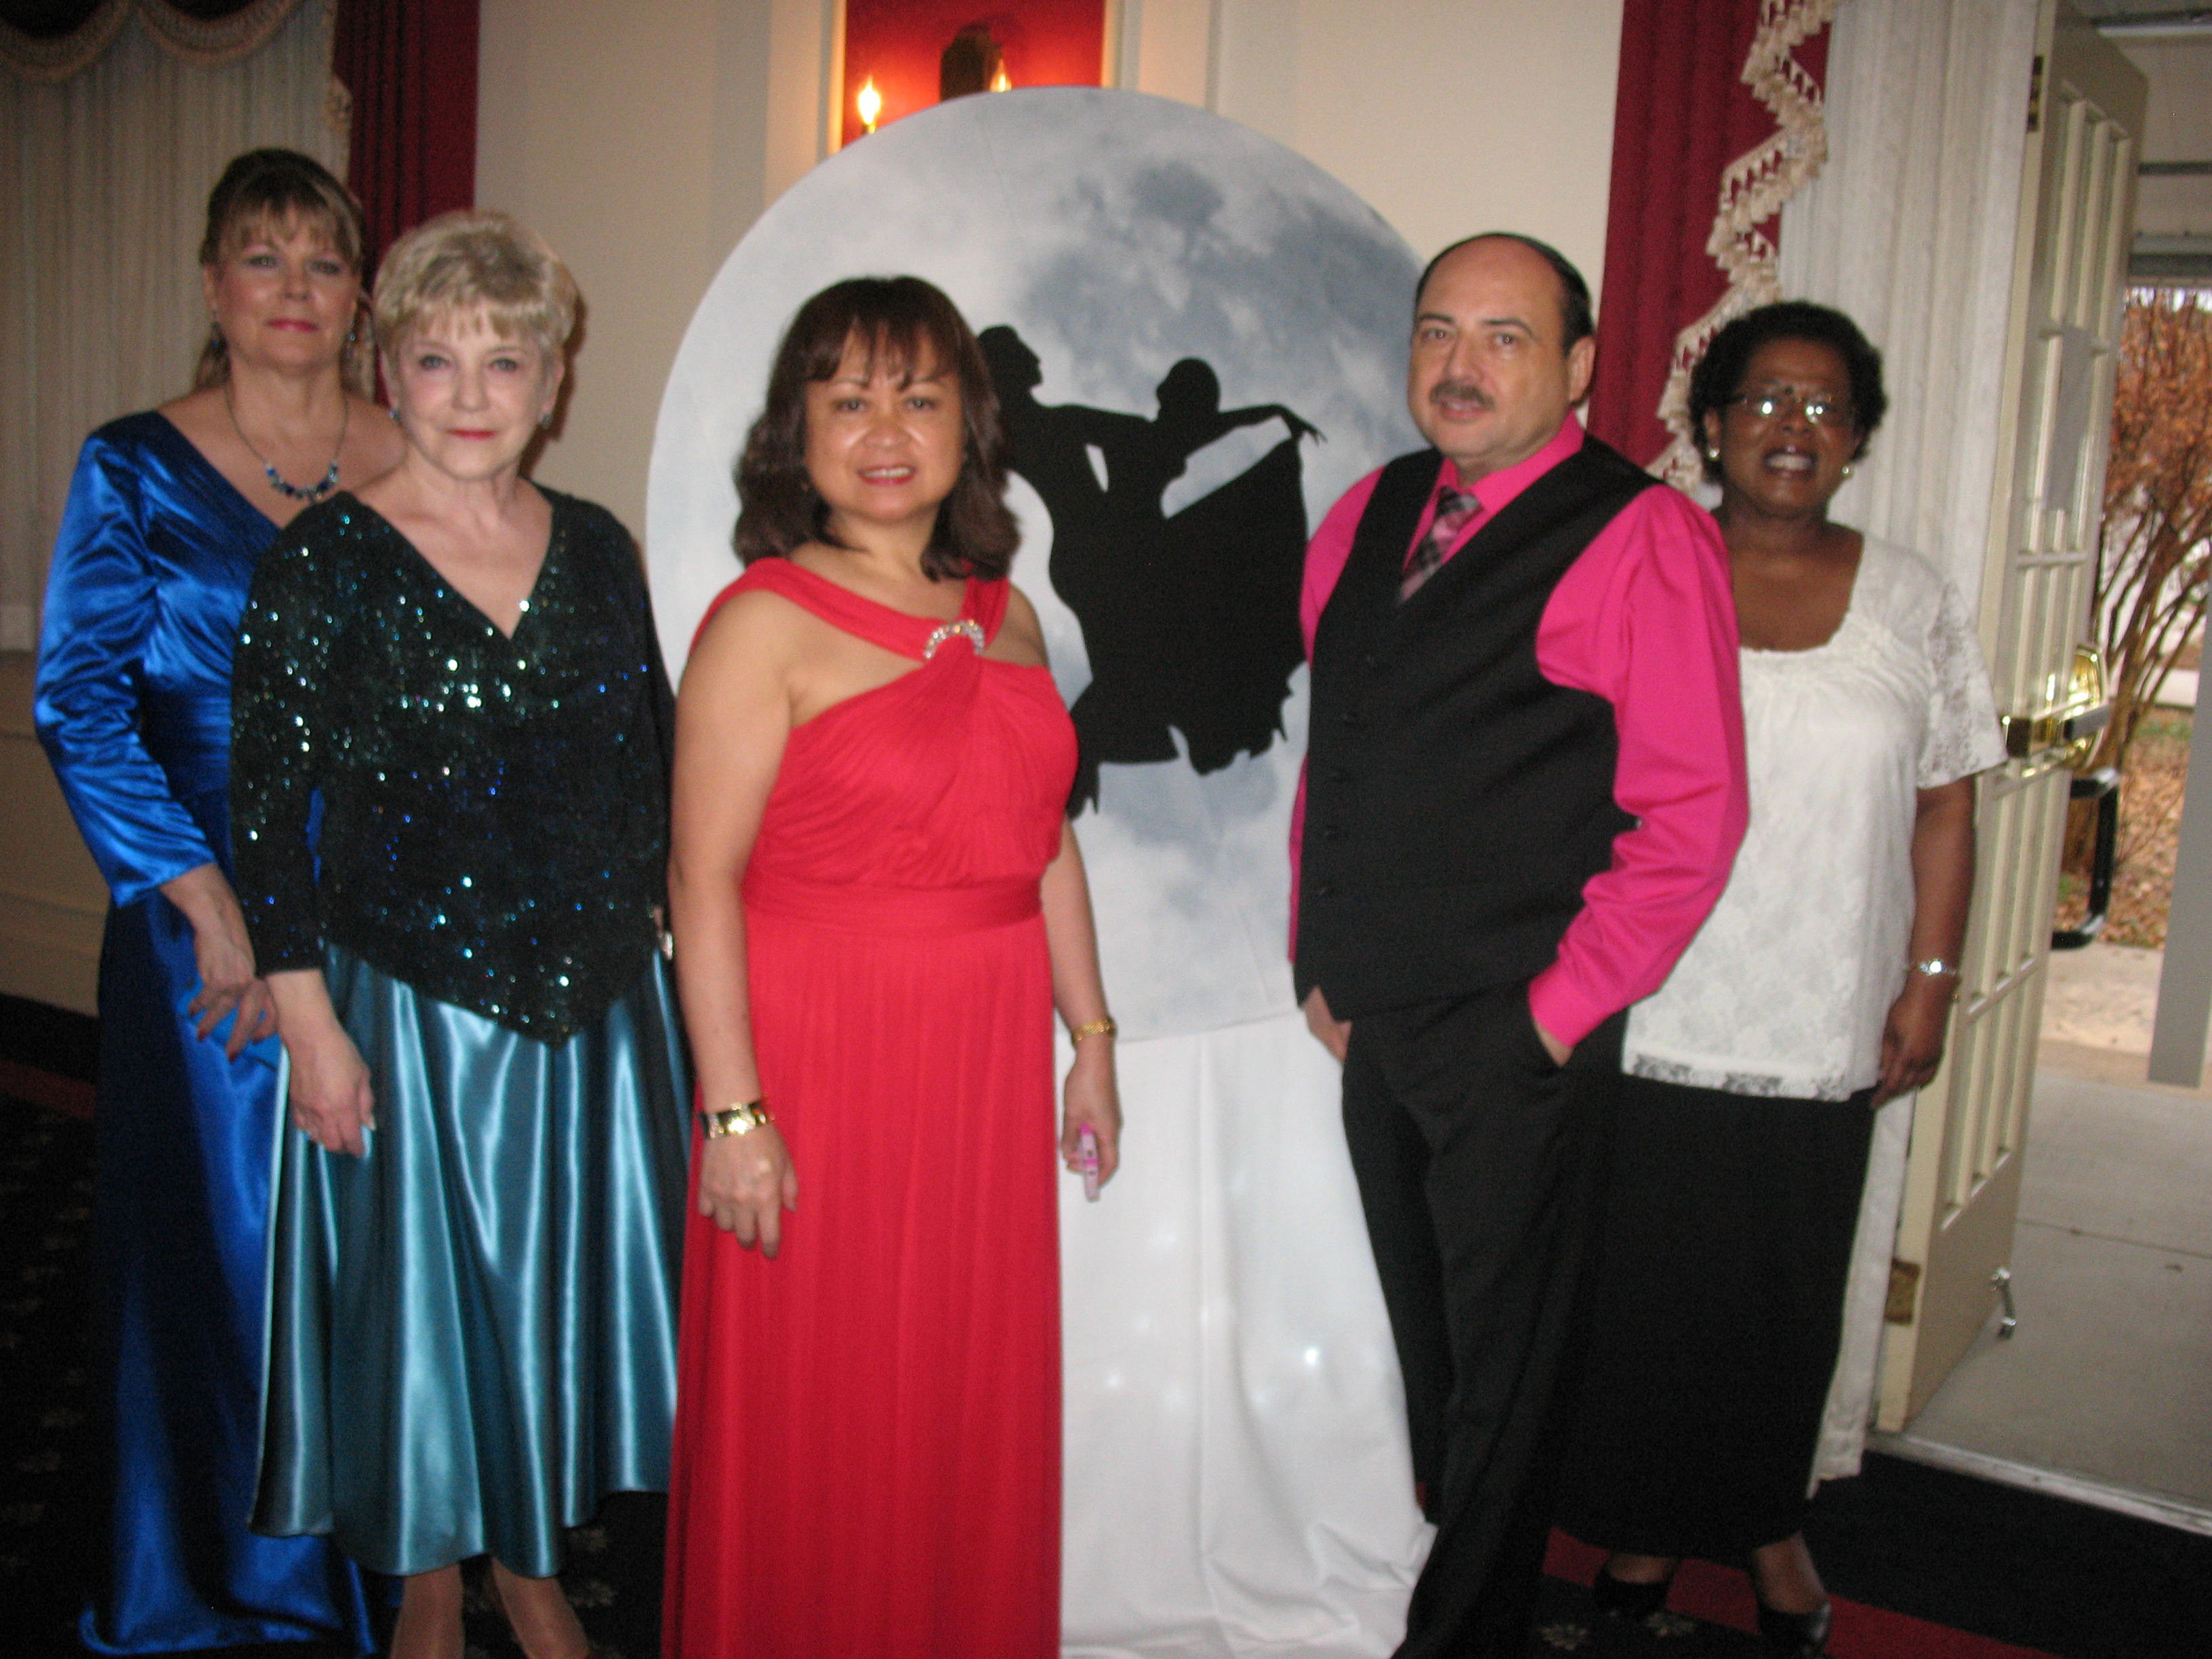 Board Members Attending Dance by the Light of the Moon